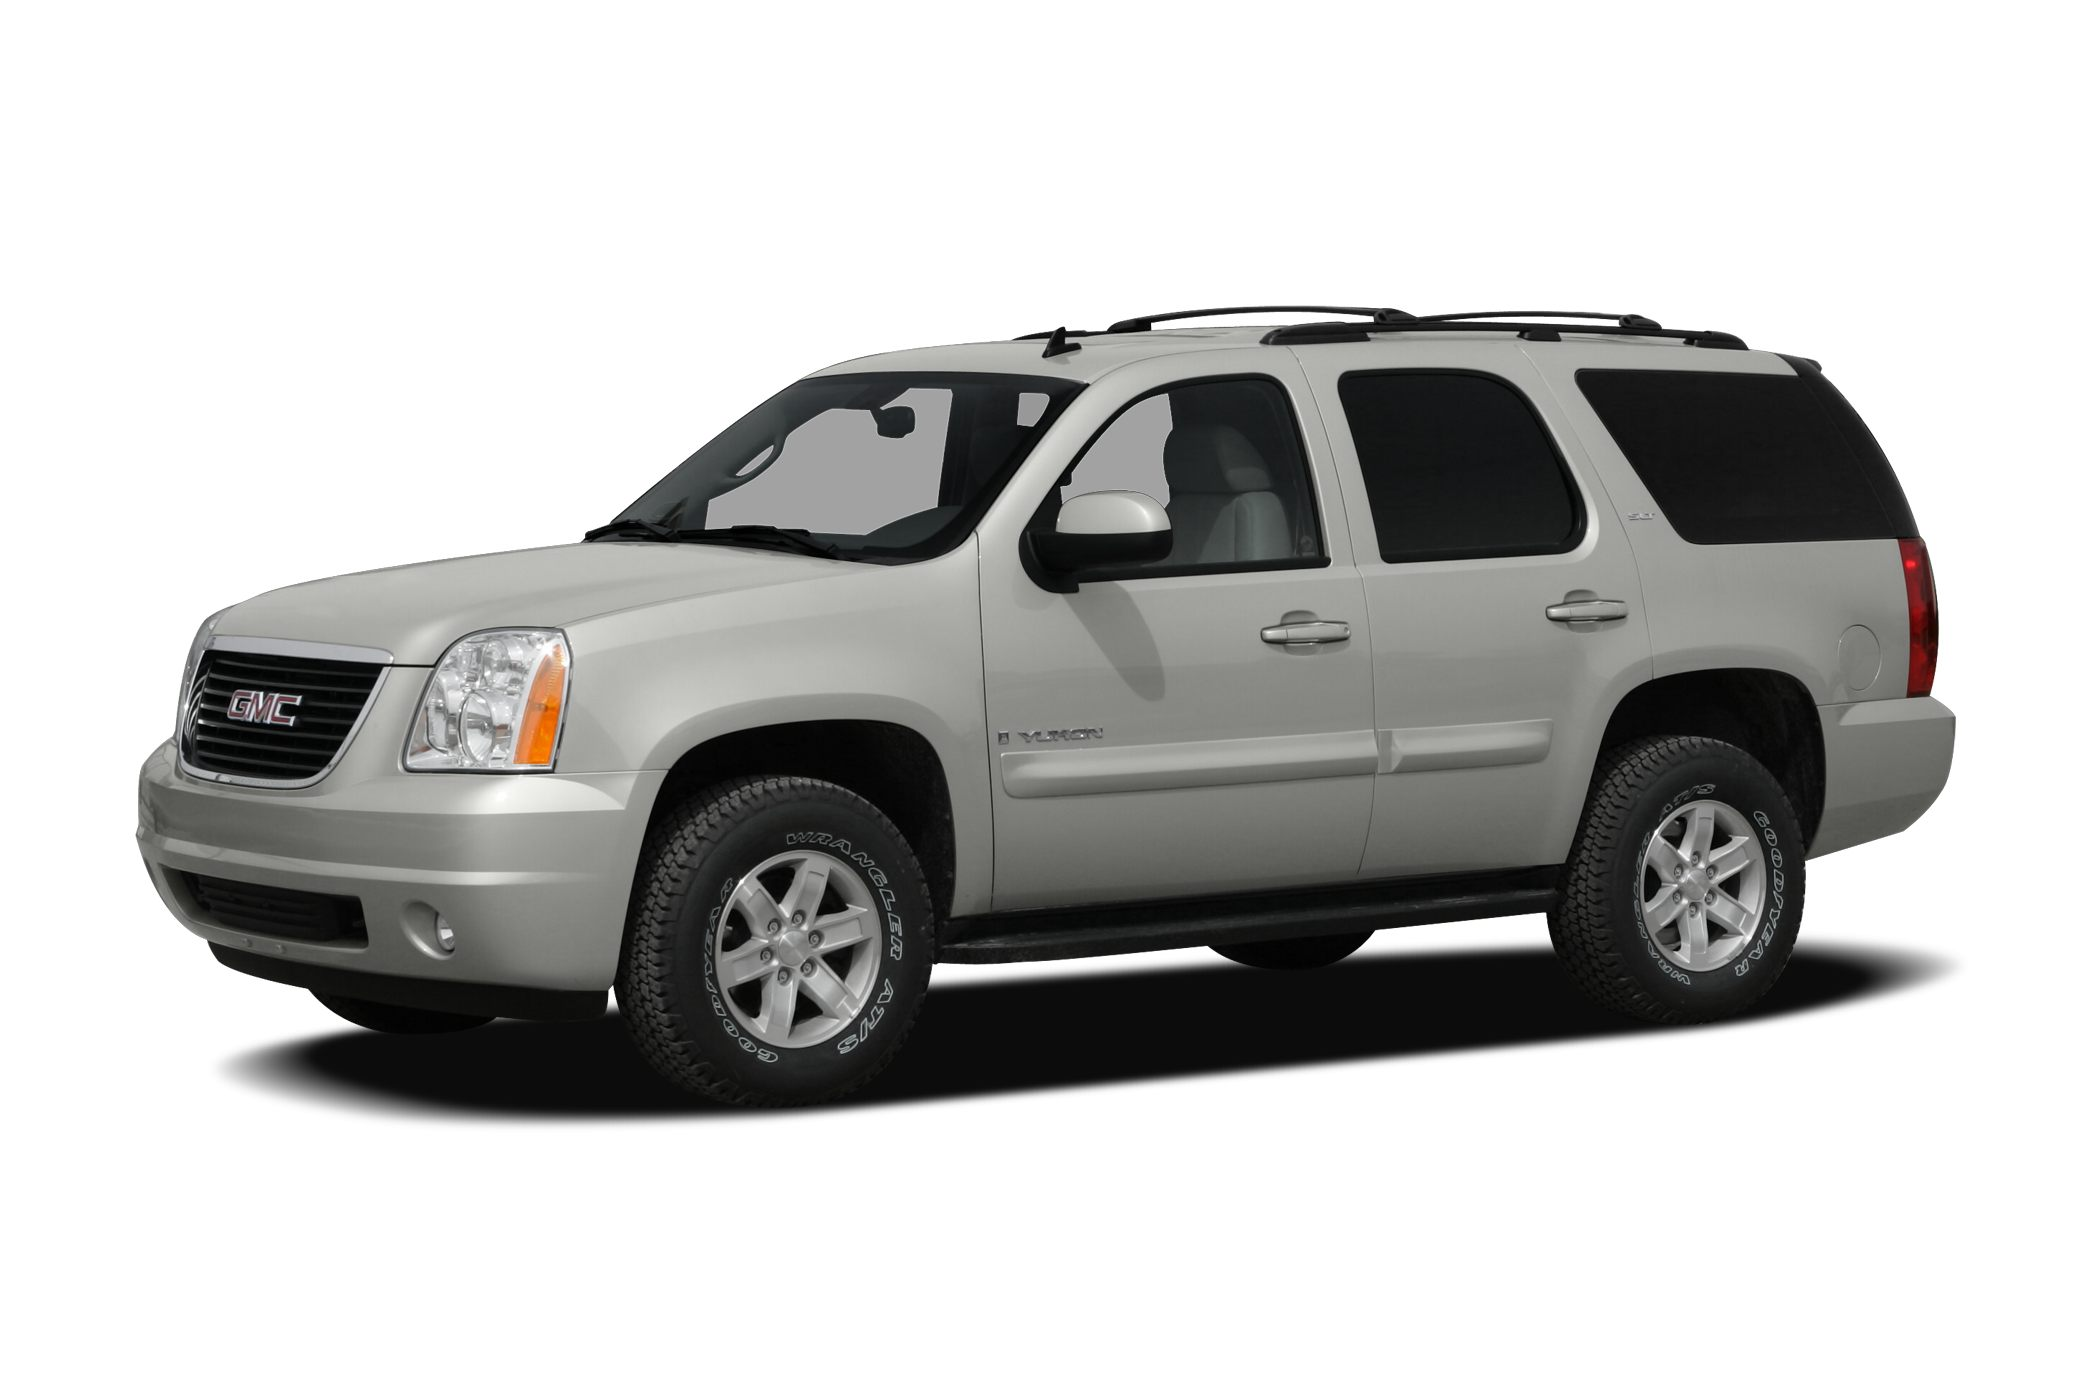 2008 Gmc Yukon Pricing And Specs